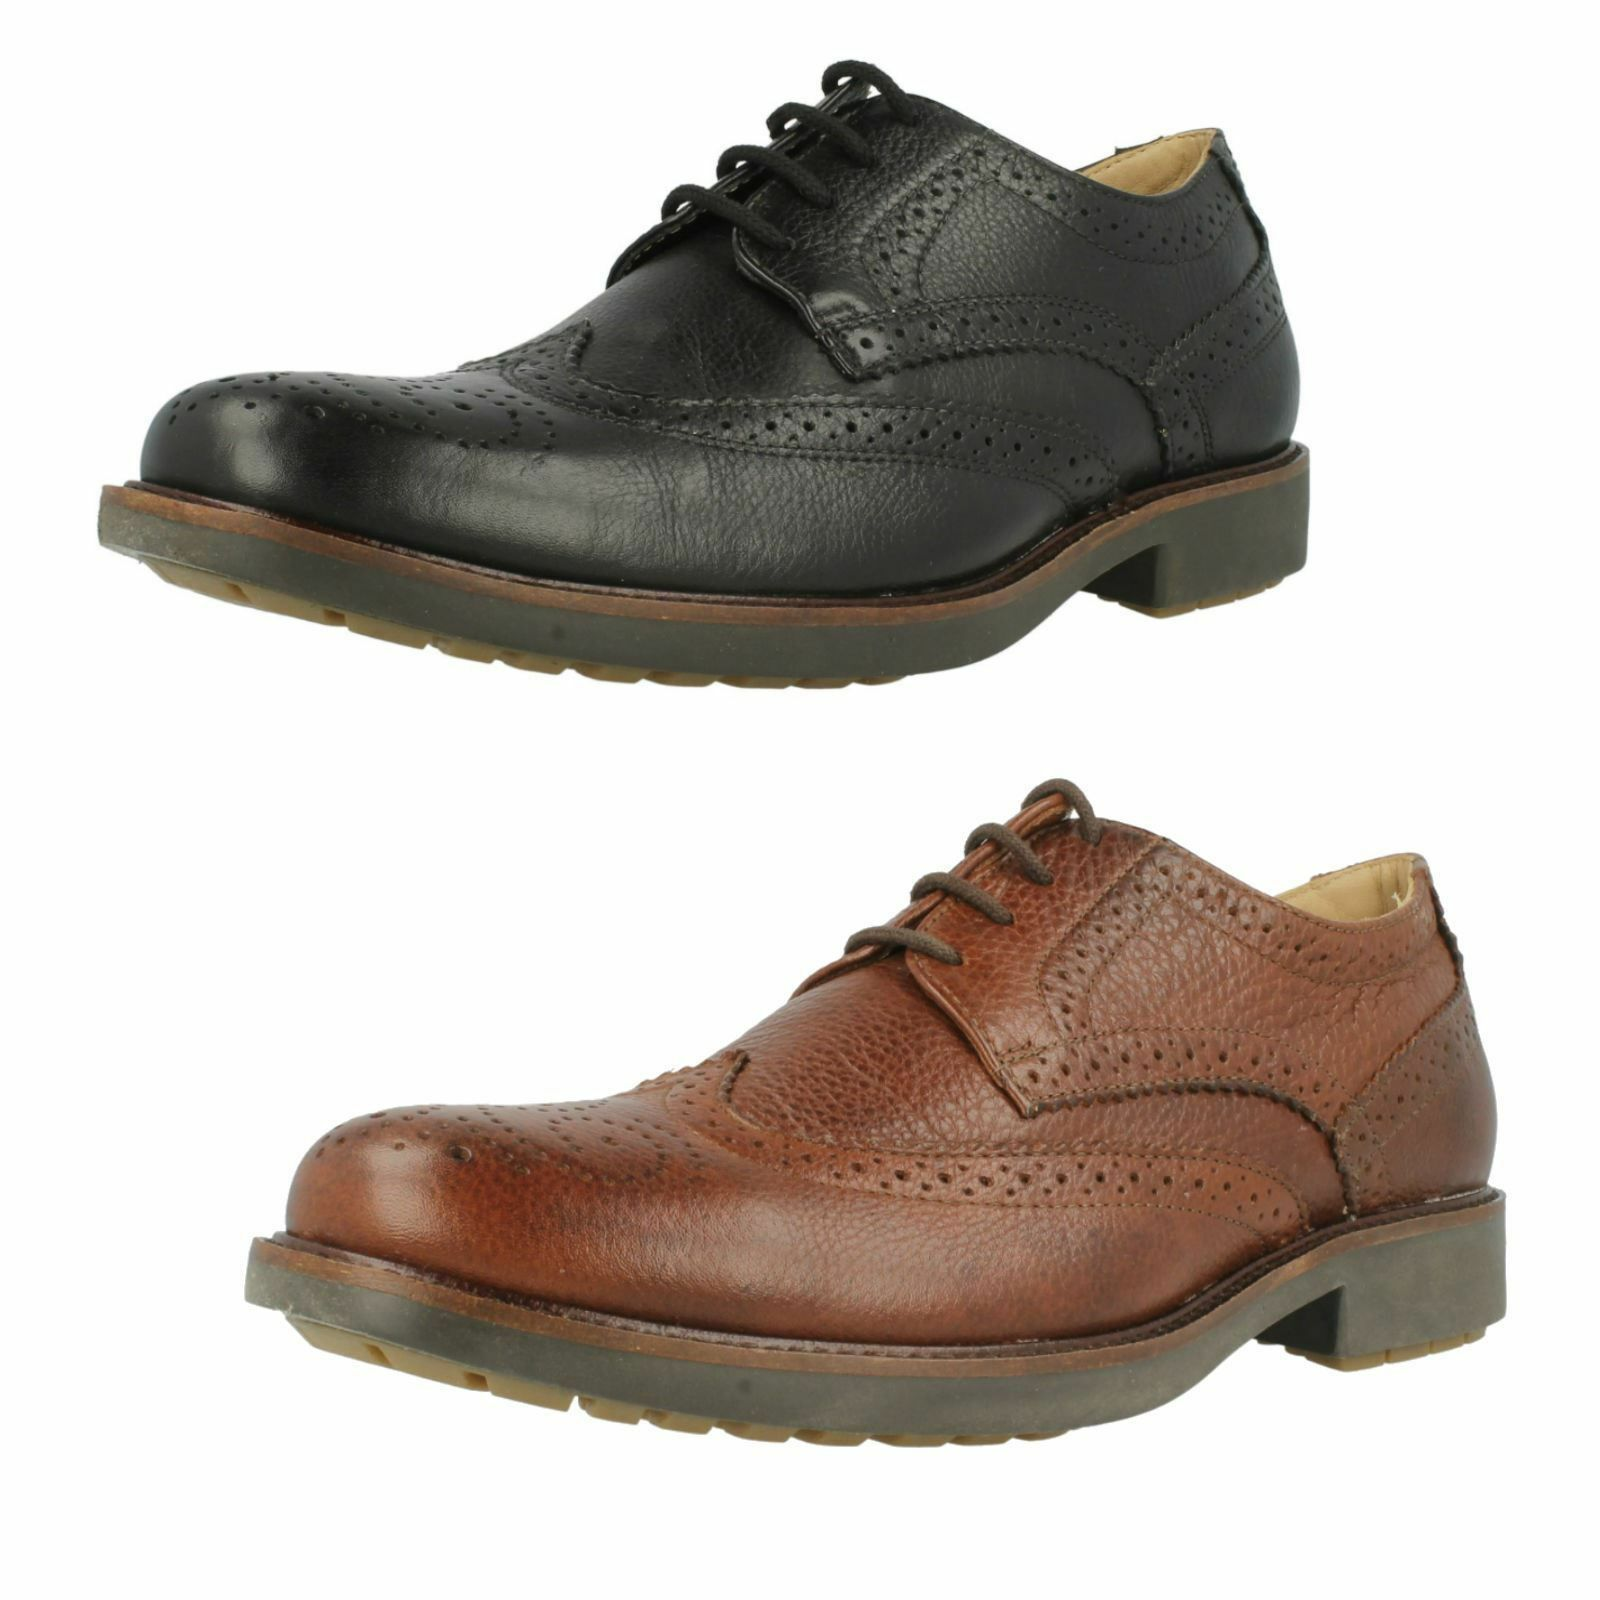 Mens Palma 909036 Black/brown Leather shoes by  Anatomic & co £115.00